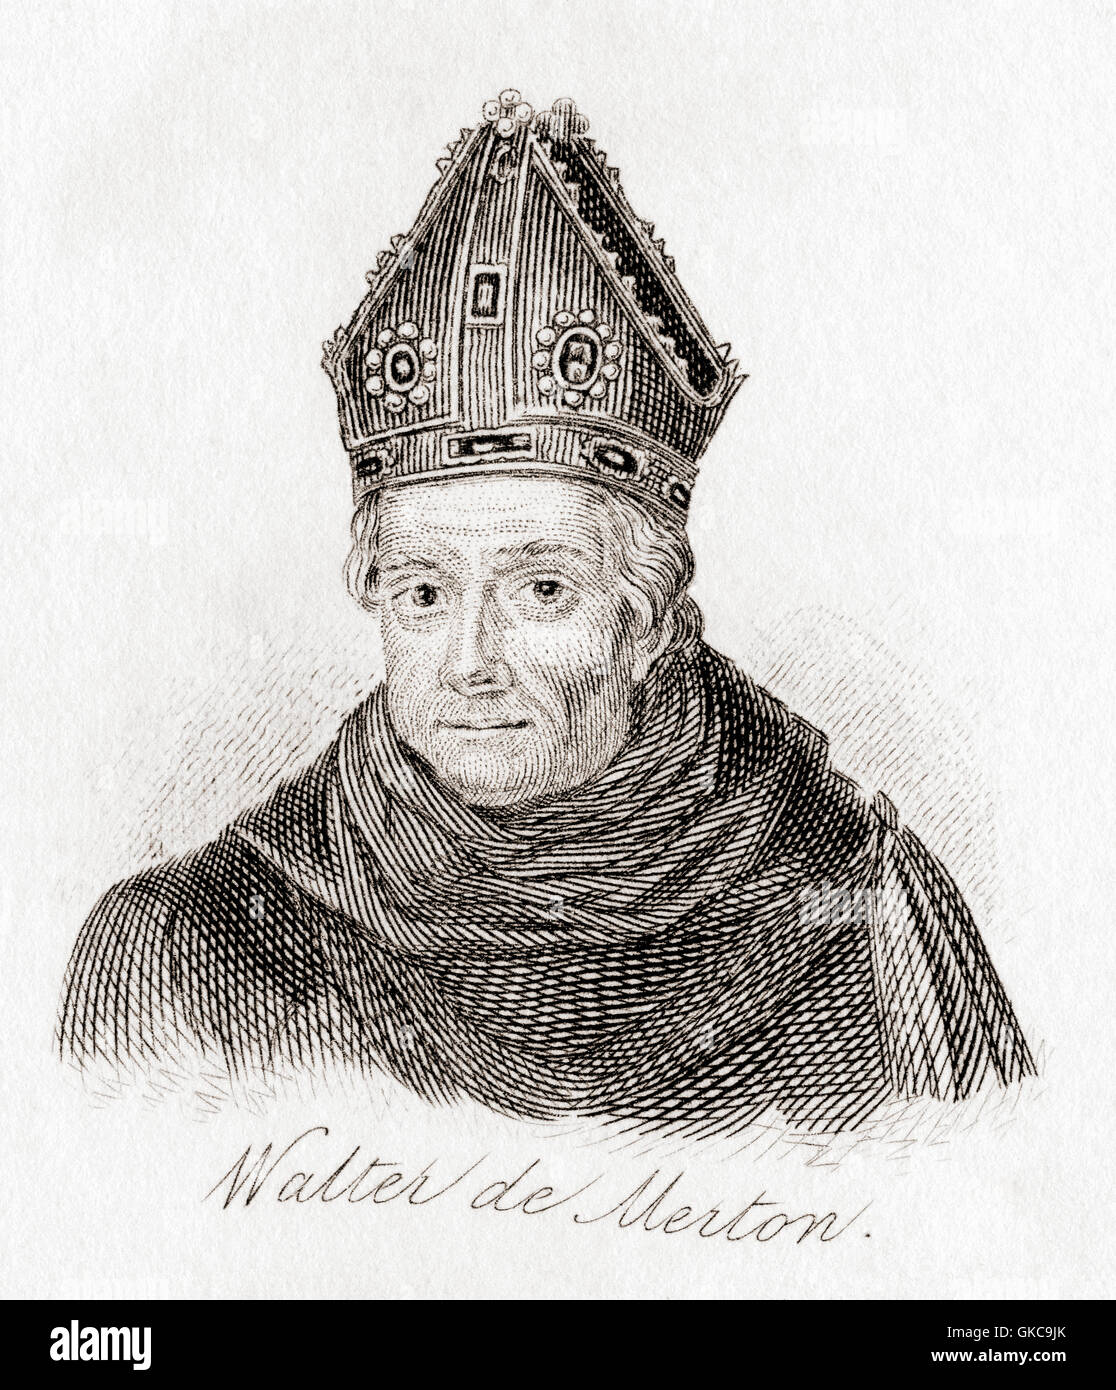 Walter de Merton, c. 1205 – 1277.  Bishop of Rochester and founder of Merton College, Oxford. - Stock Image